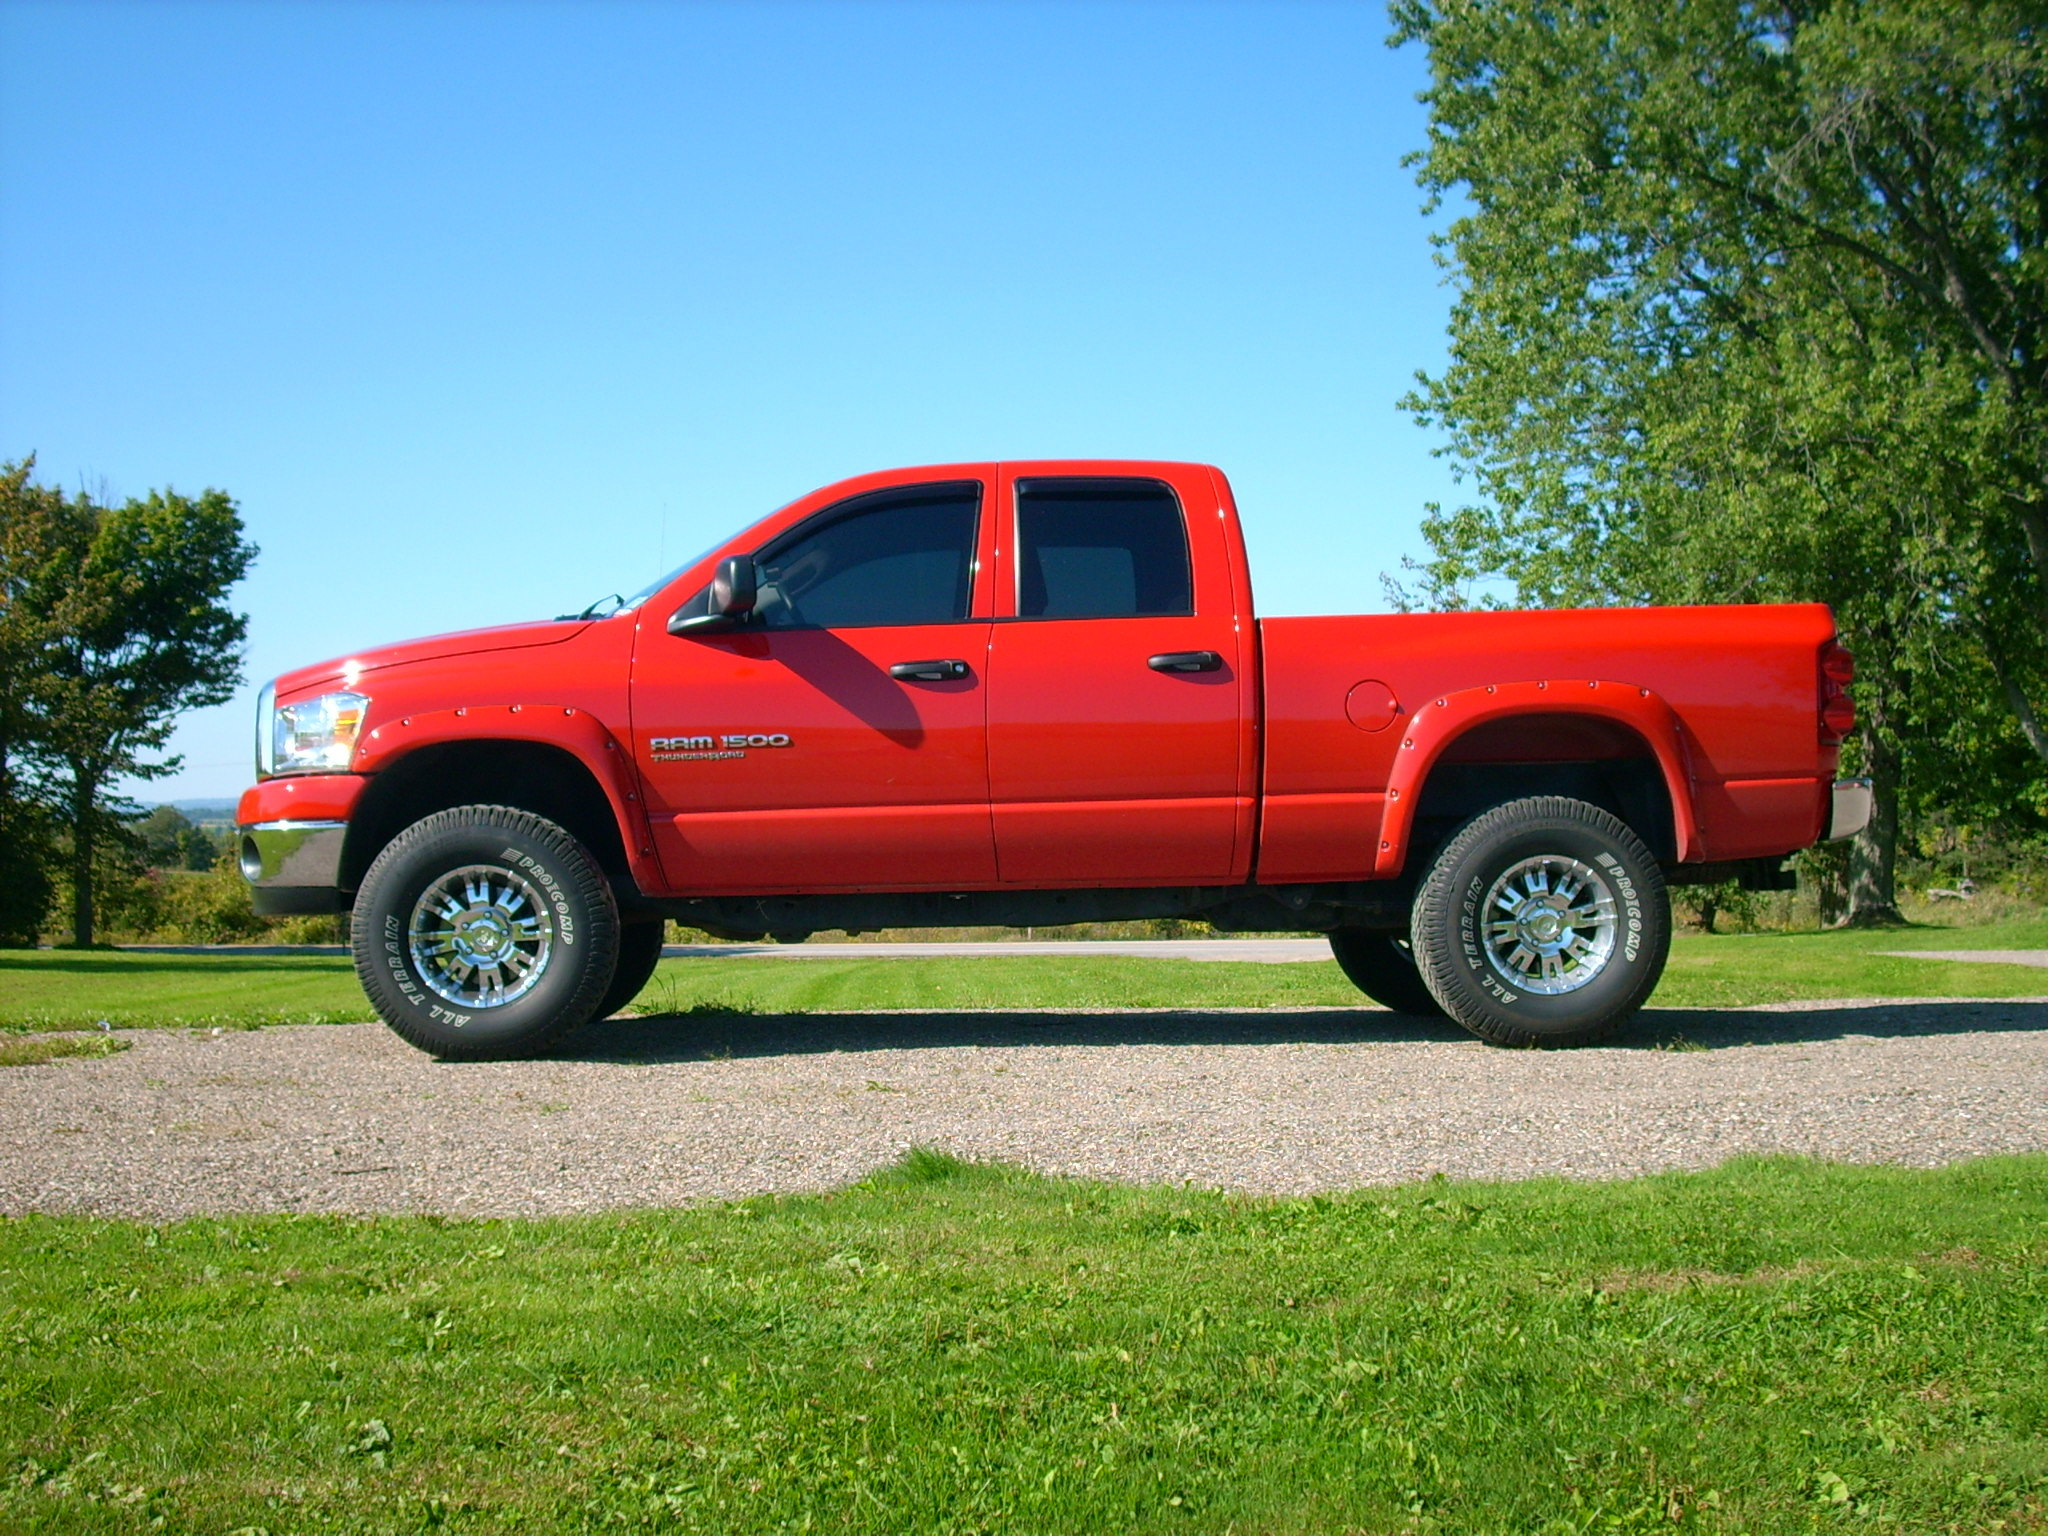 lilredsdime 2007 dodge ram 1500 regular cab specs photos modification info at cardomain. Black Bedroom Furniture Sets. Home Design Ideas